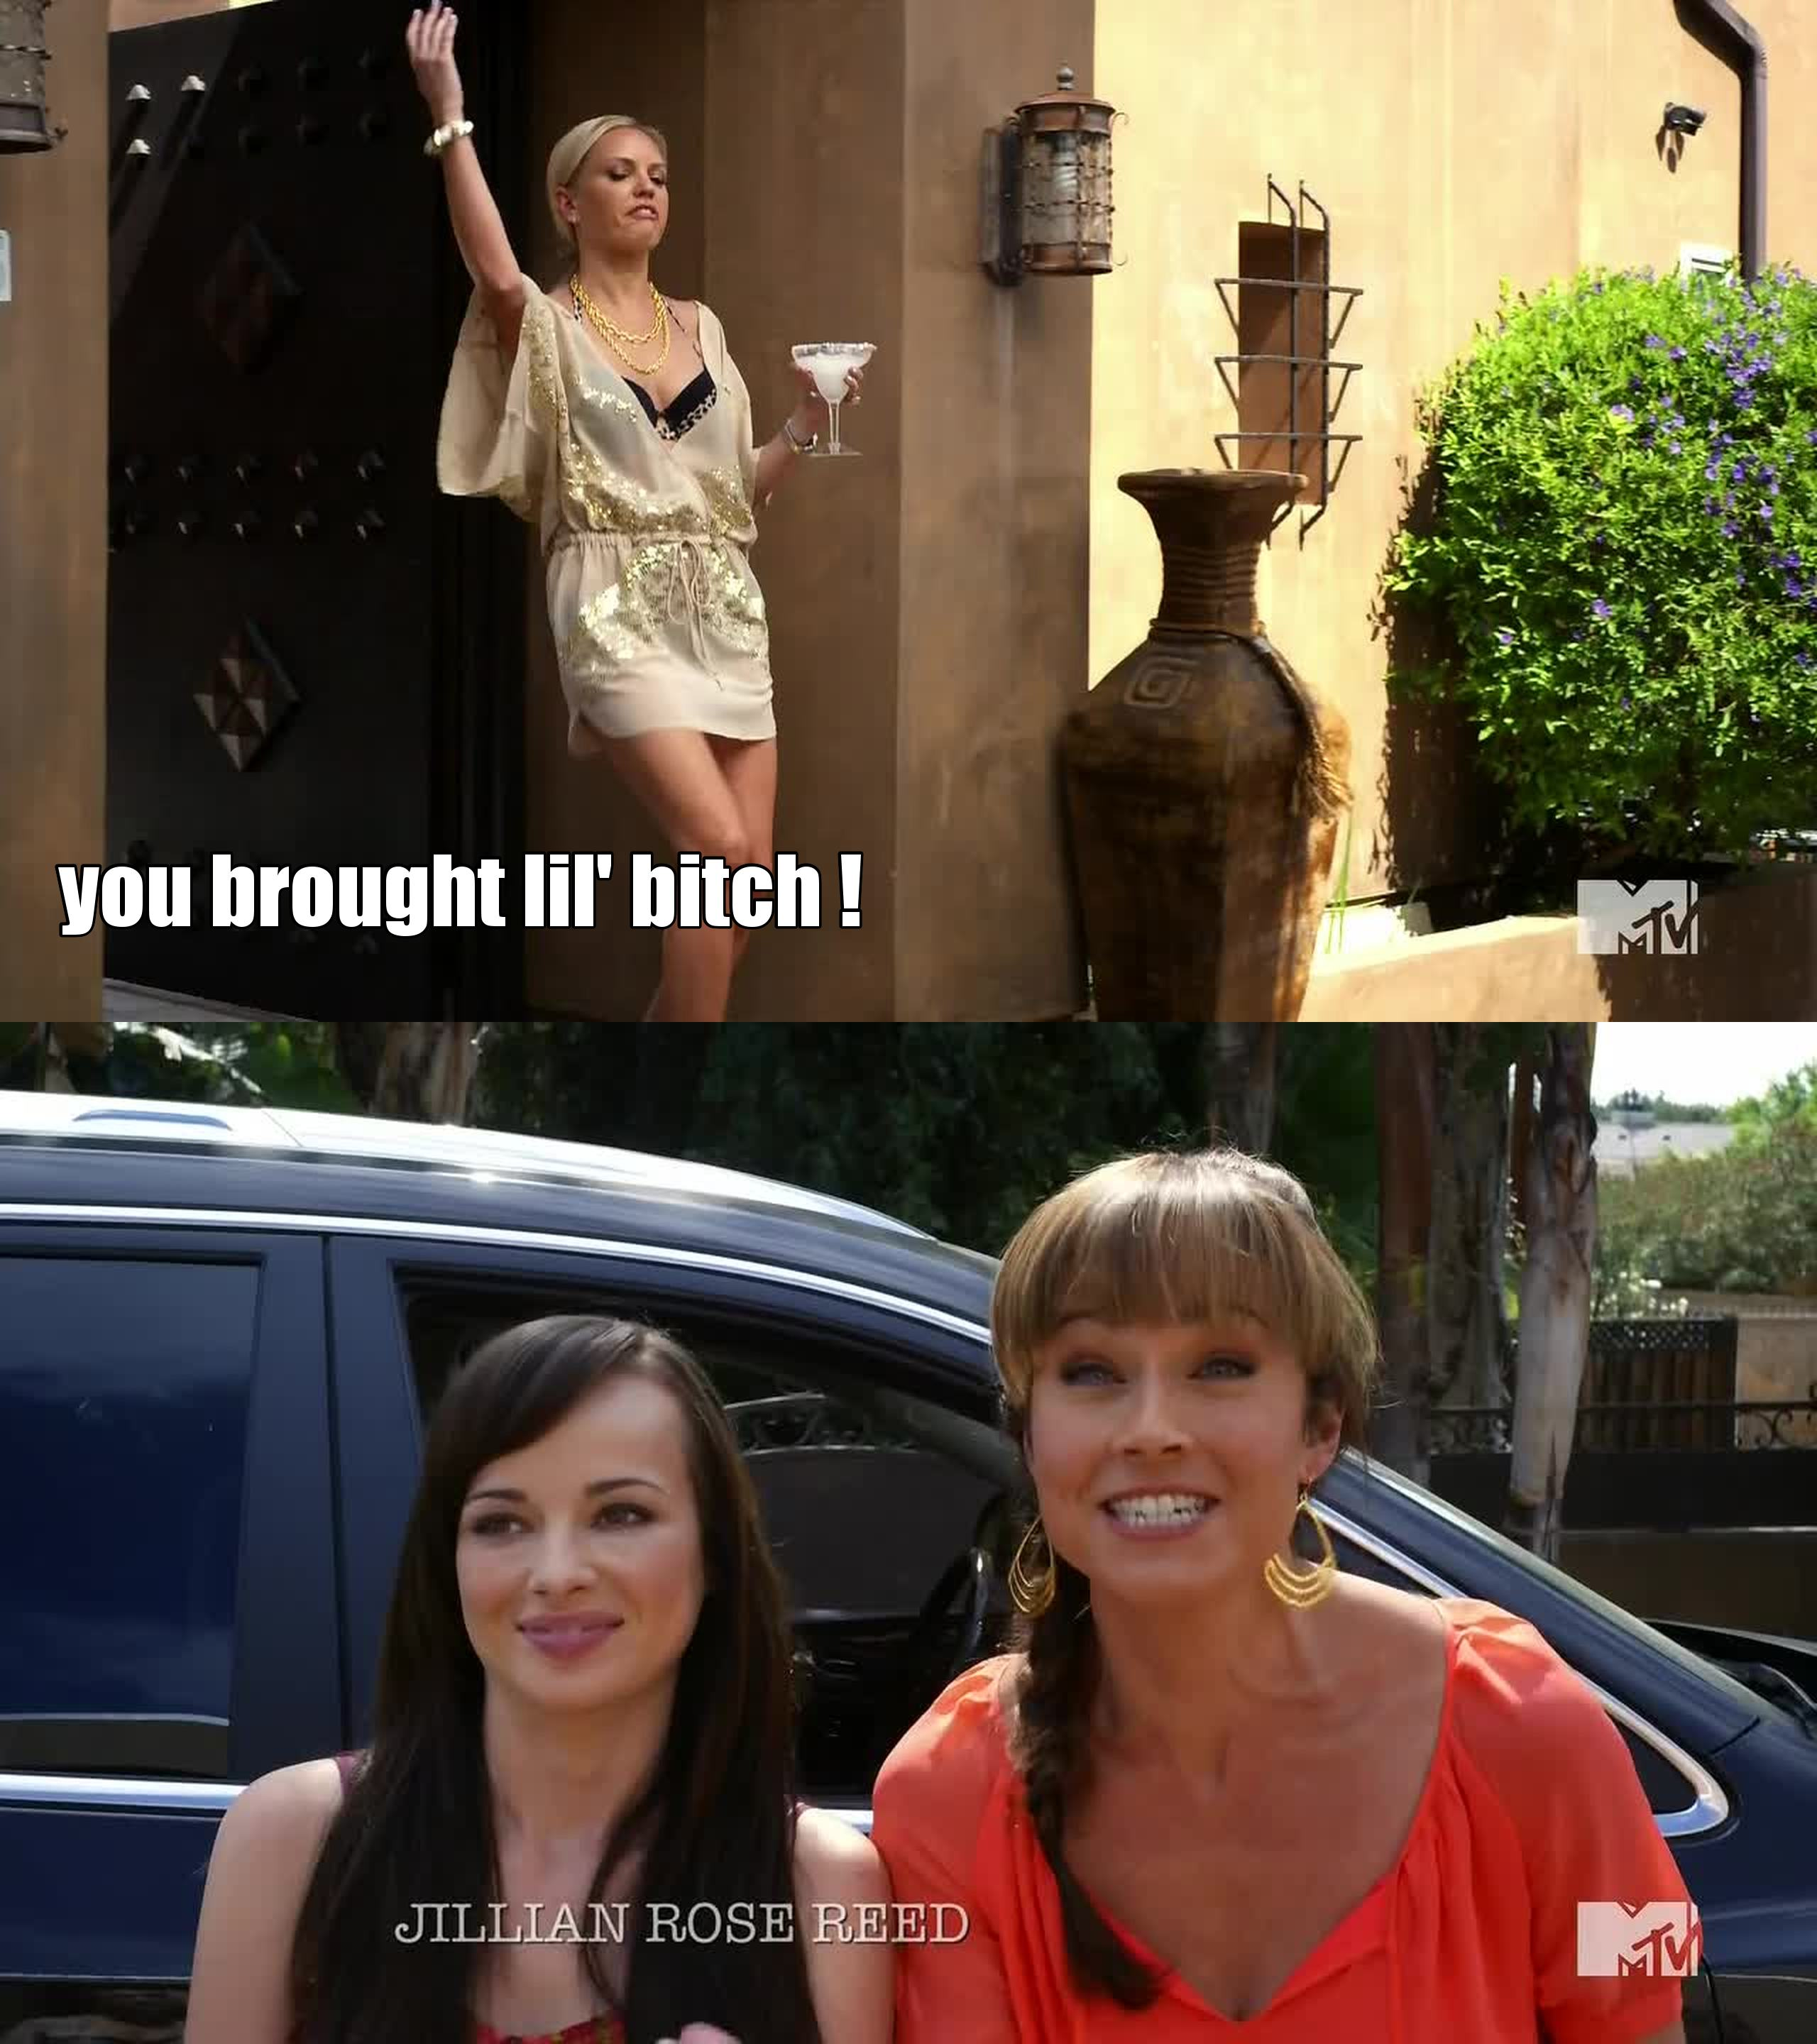 jenna's mom and her friend are hilarious xD!!